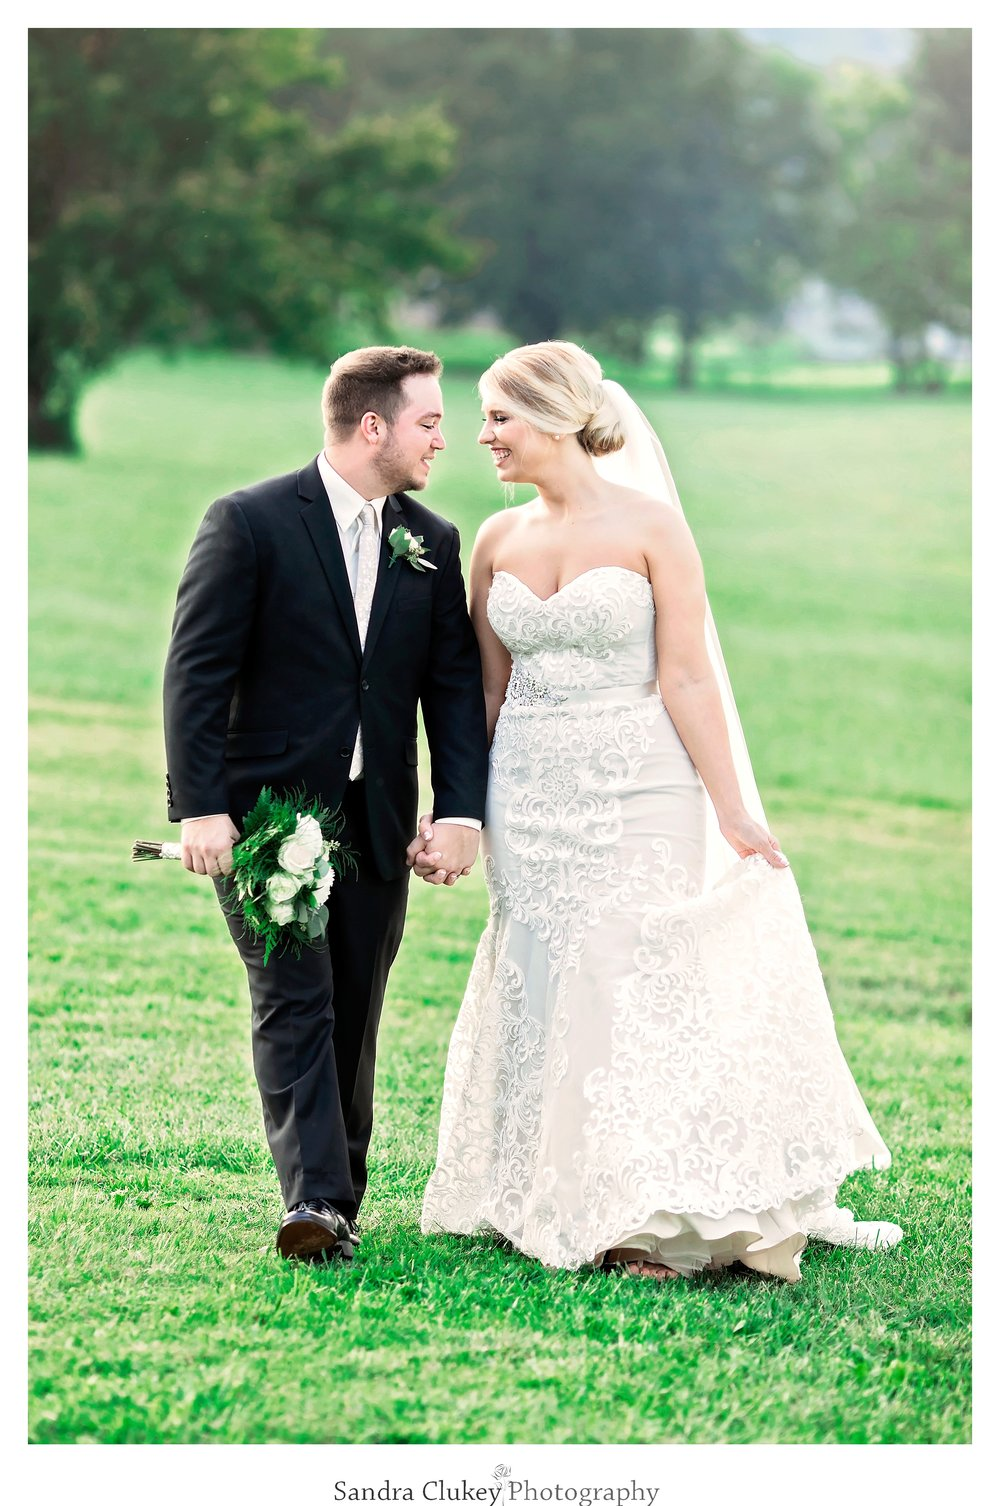 Bride and groom walk together at Tennessee RiverPlace, Chattanooga TN